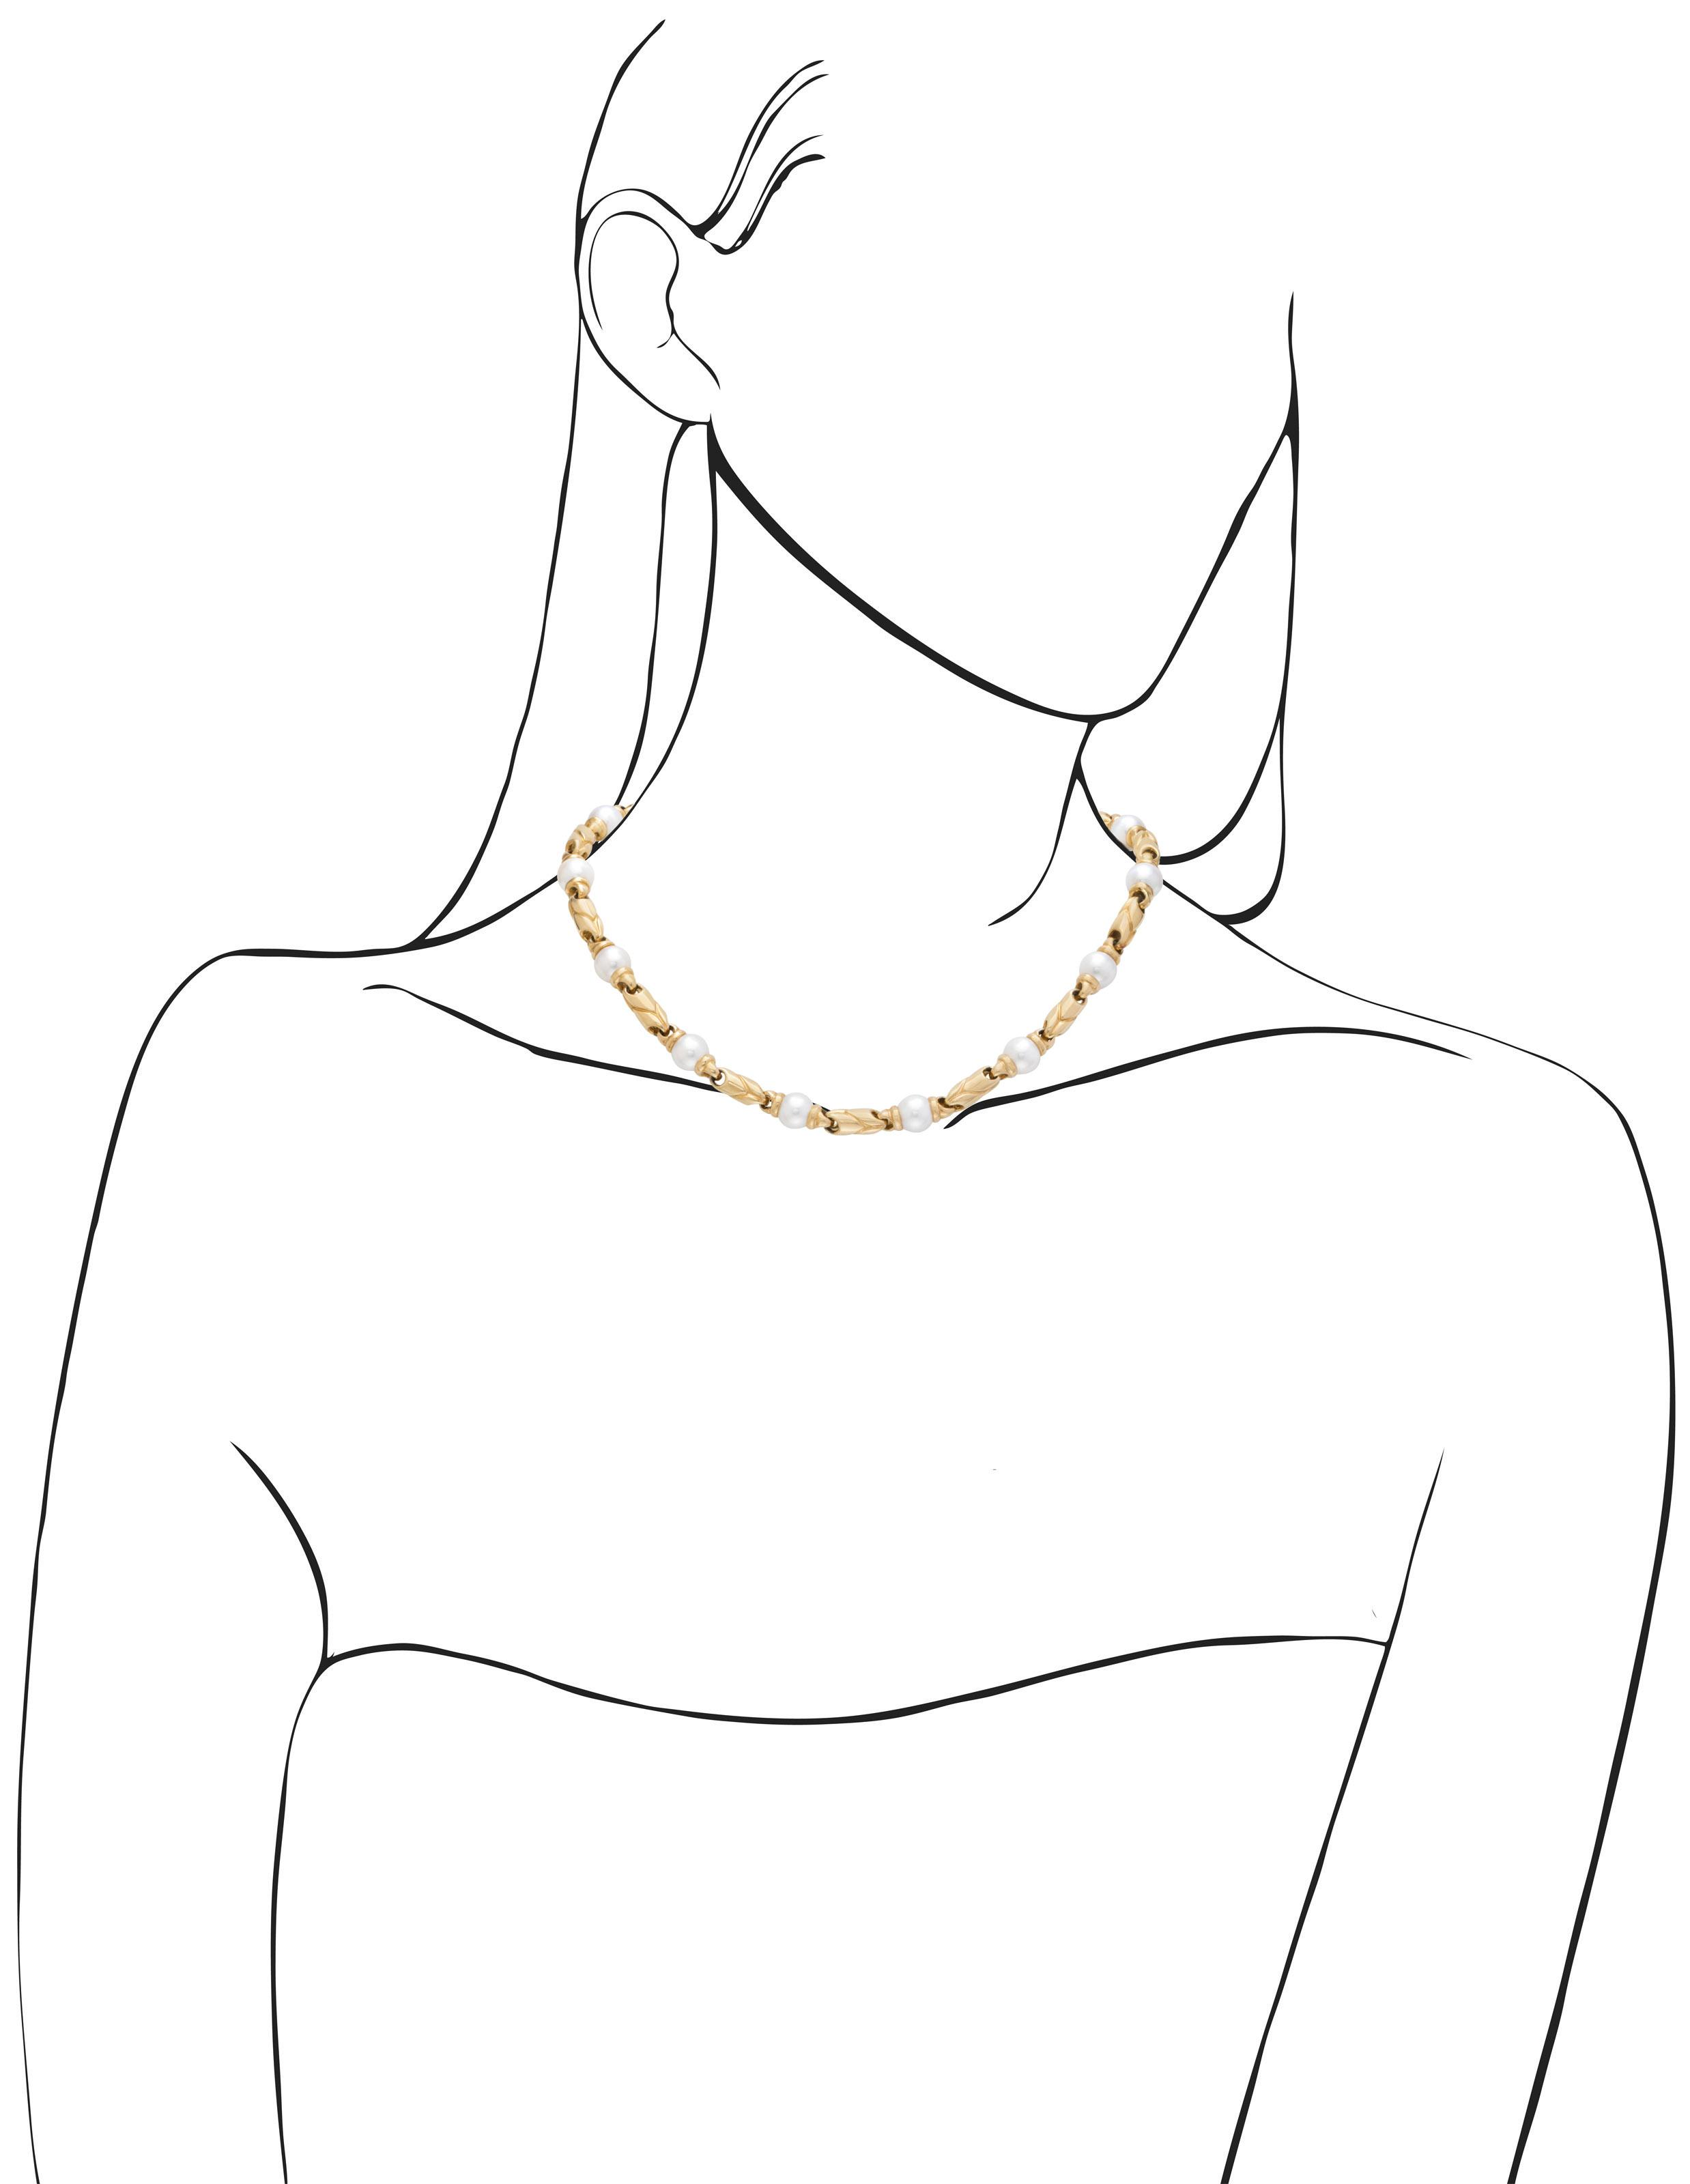 BULGARI CULTURED PEARL AND GOLD NECKLACE